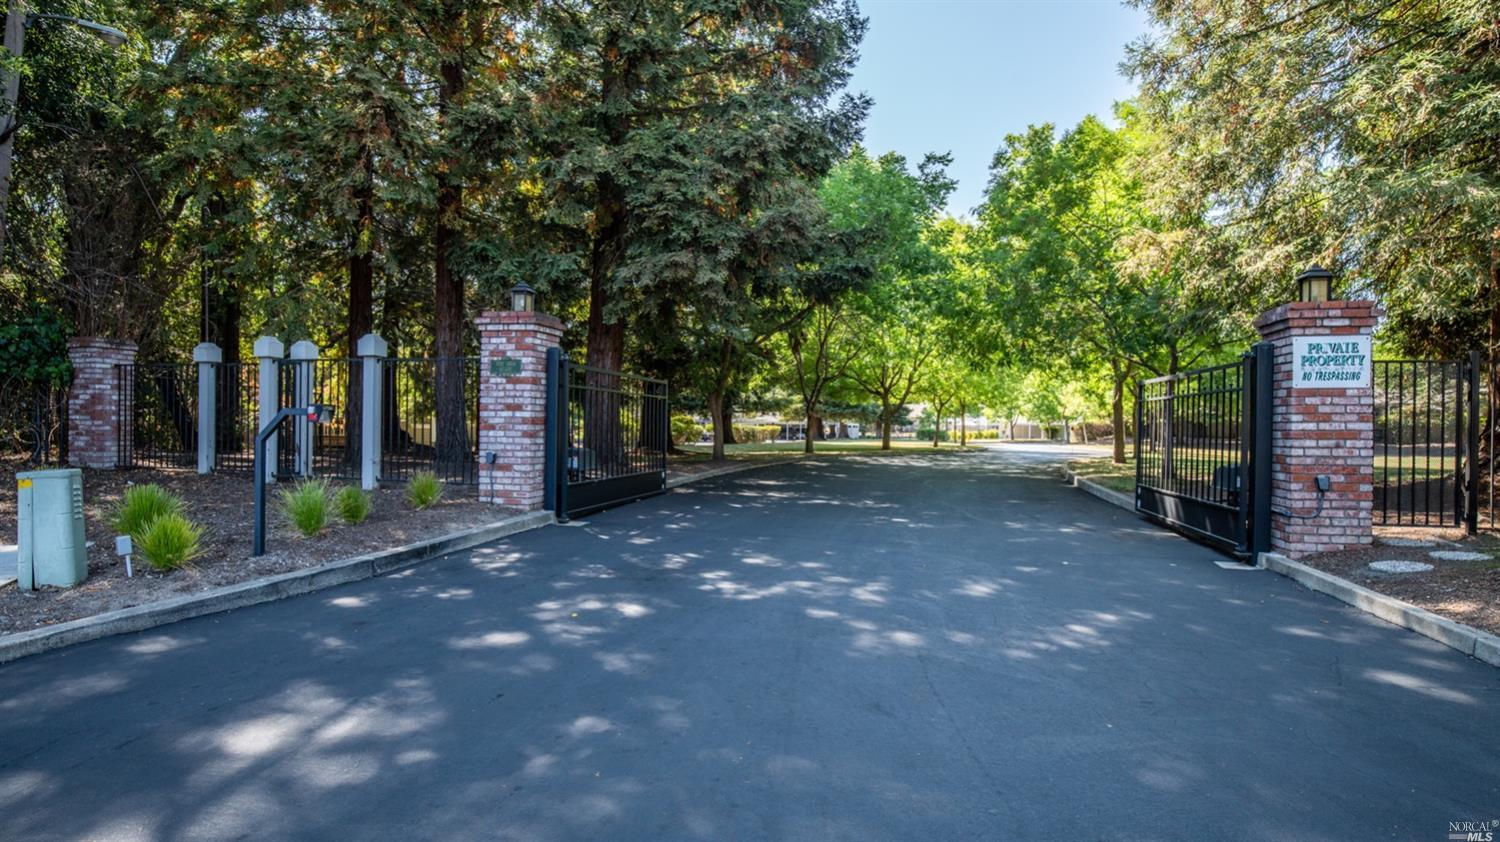 Exquisitely remodeled one story townhome at Deercreek Estates in the heart of Sonoma's Wine Country. This hidden and gated 28-unit community backs to the open space and creek at Bear Cave Park. Open living/dining room with vaulted ceilings & wood burning fireplace, and stunning quartz kitchen with stainless appliances provides a great room feel. Kitchen door opens to private back deck and patio garden for outdoor dining and entertaining. A rear gate opens to a walking path along the creek. Primary bedroom suite plus 2nd bedroom, and beautifully renovated bathrooms. Washer/dryer in unit, storage closet on deck, and larger storage behind carport to store your bicycles for cruising downtown. Close to the sparkling community pool, and surrounded by grassy meadows. Excellent first-time buyer opportunity, or 2nd home option just mins from the Sonoma Plaza.  Ready to move in and enjoy all that Sonoma offers!